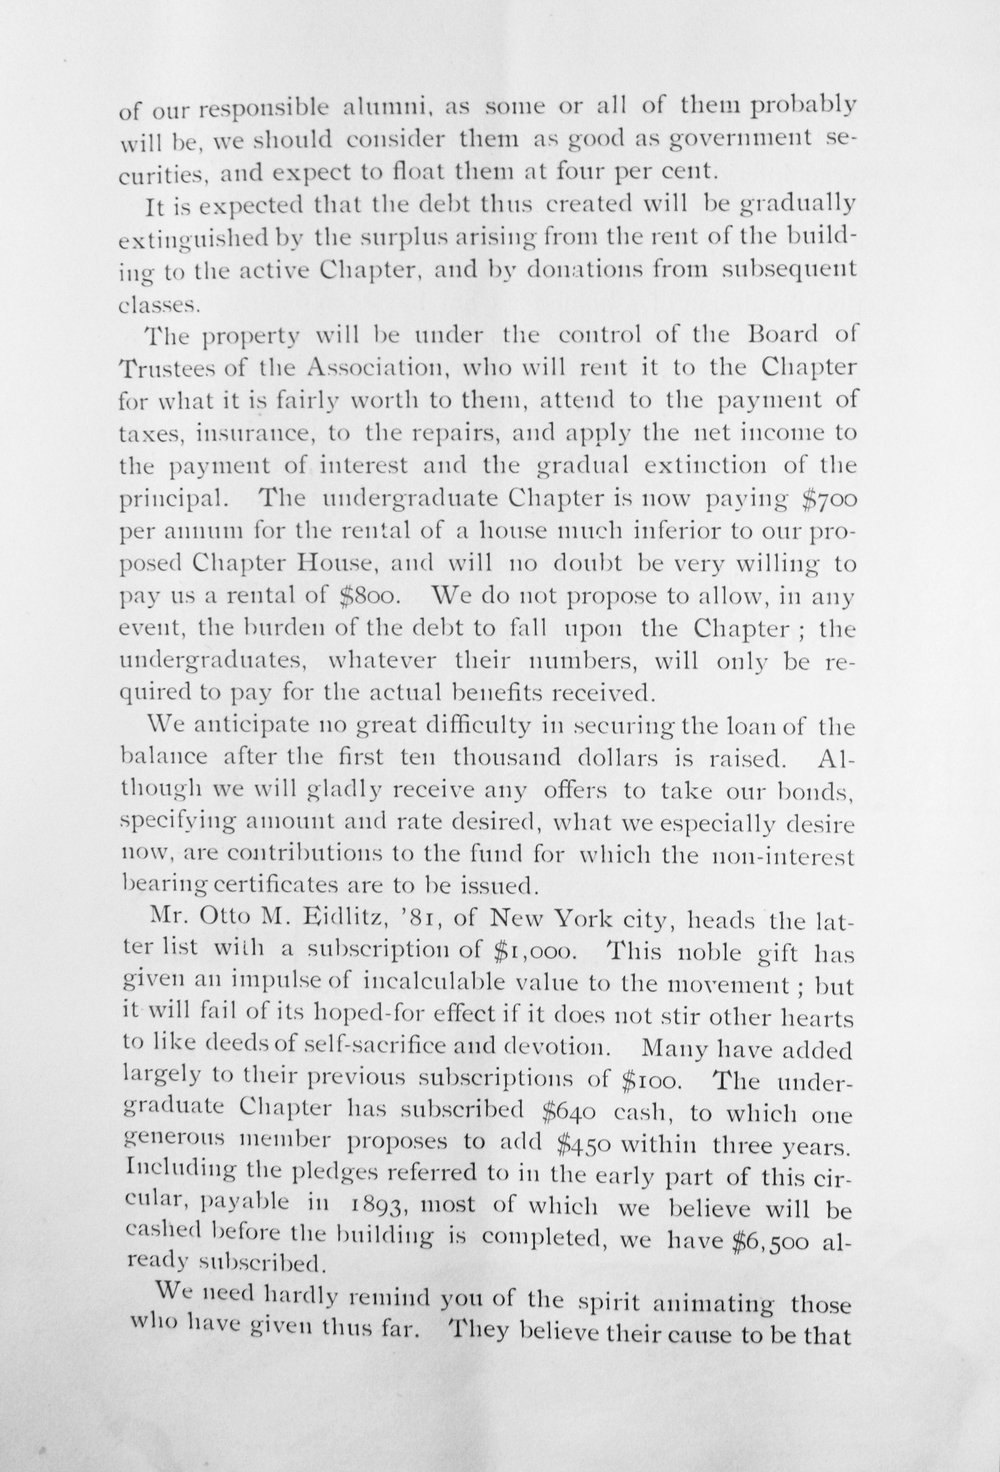 Circular About New House, Page 3